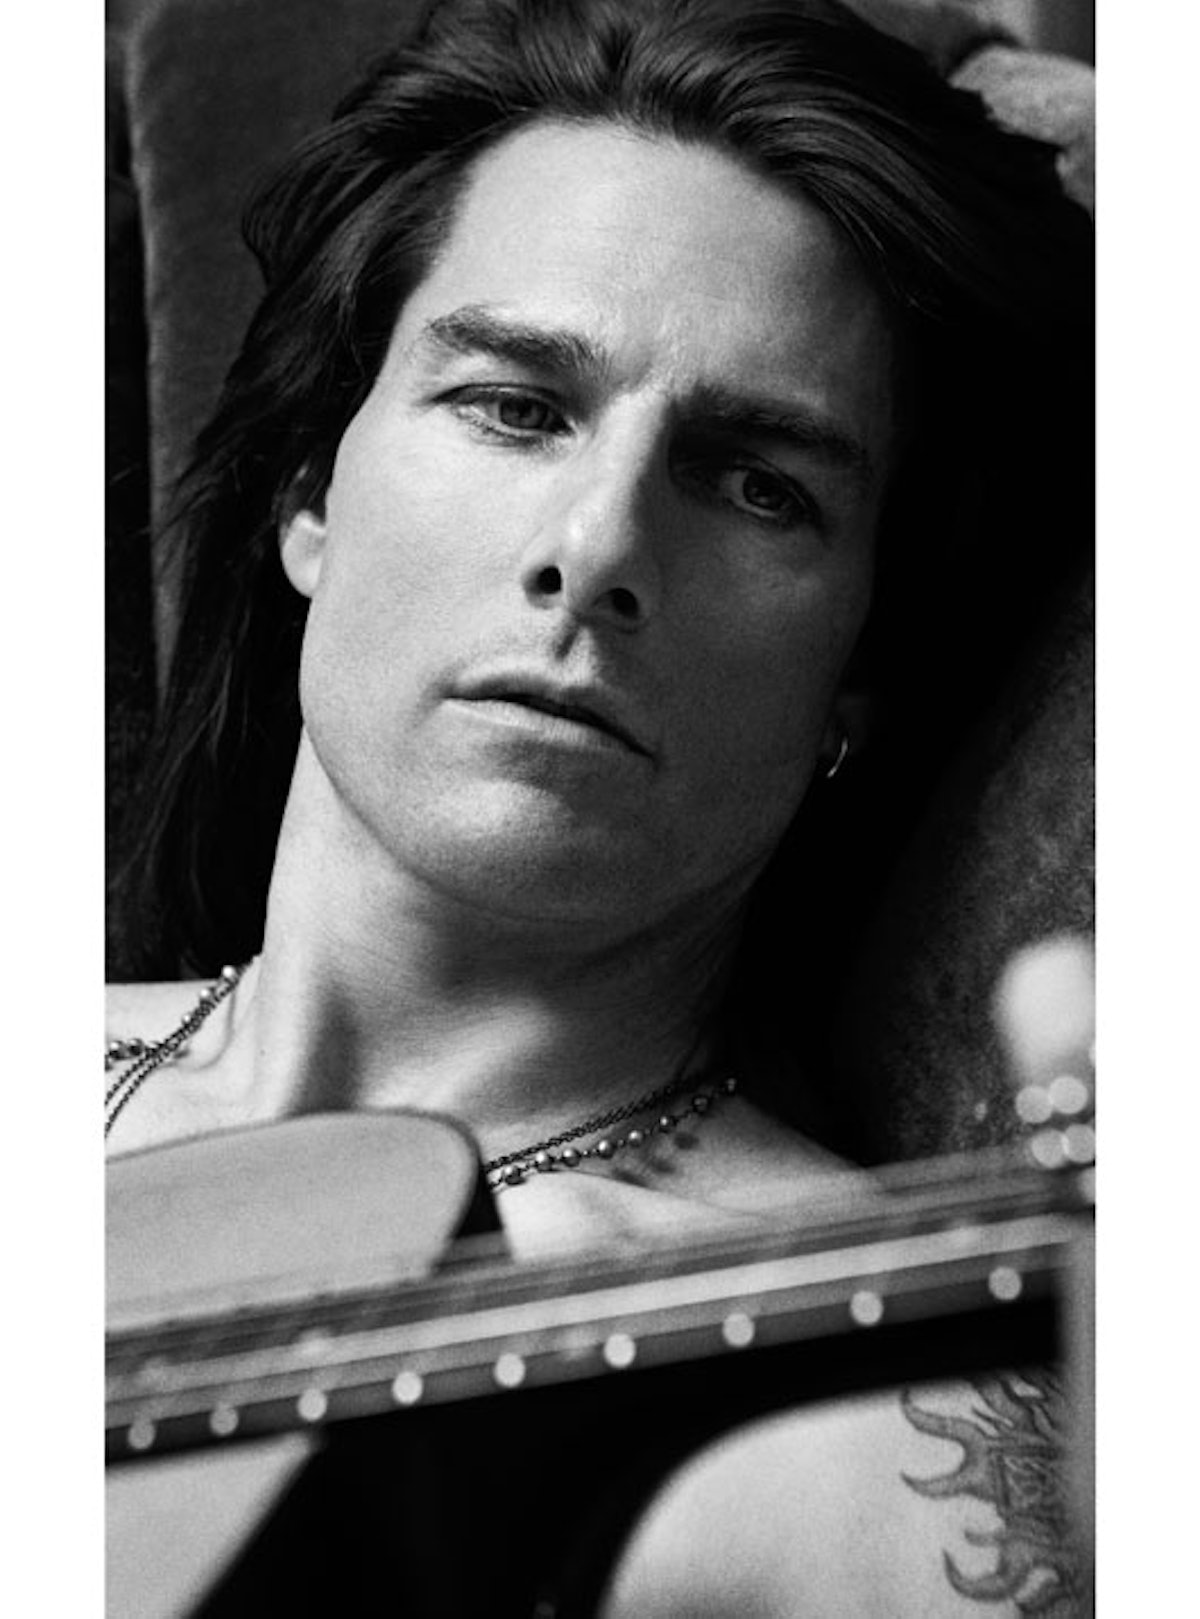 cess-tom-cruise-rock-of-ages-cover-story-09-l.jpg